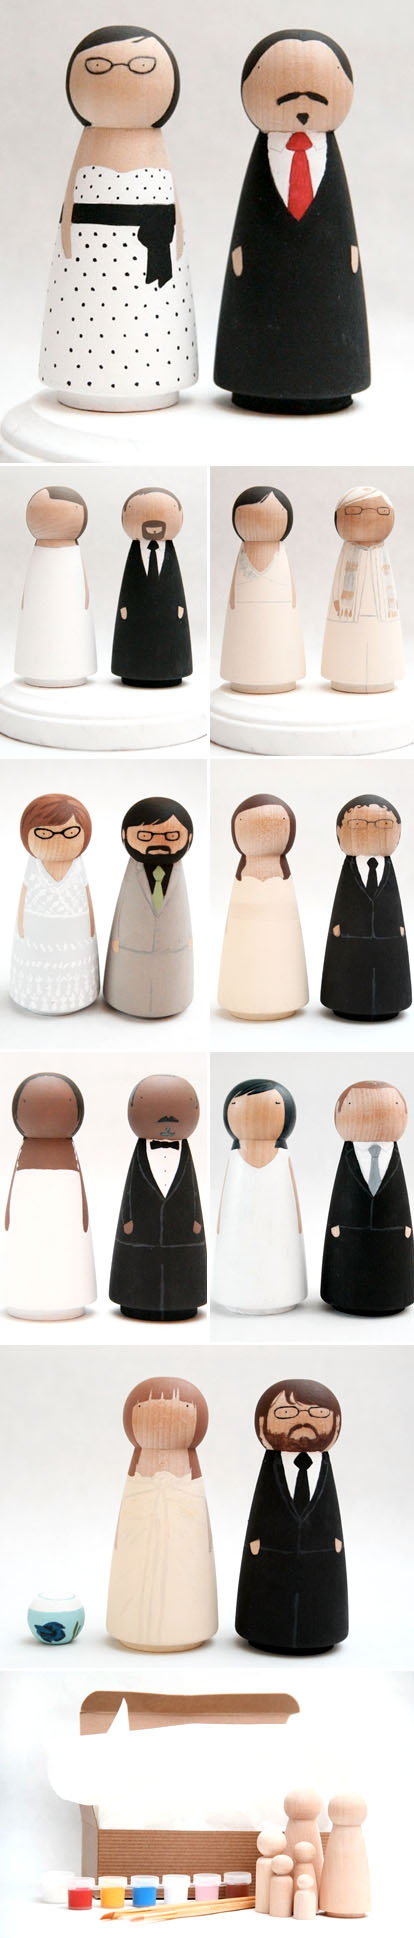 custom wooden doll wedding cake toppers from Goose Grease on Etsy.com